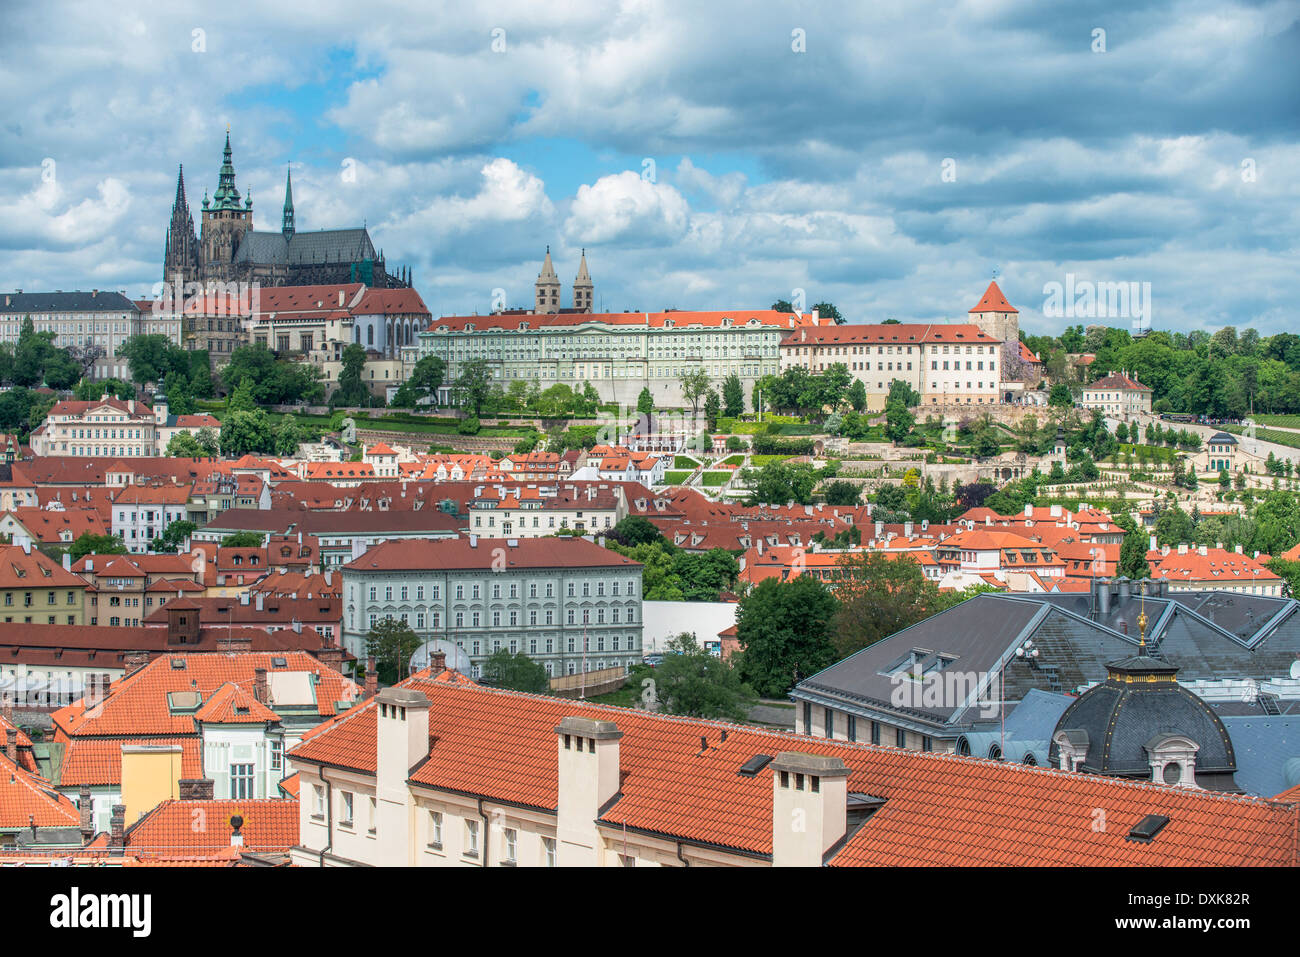 Prague Castle and city, Prague, Central Bohemia, Czech Republic - Stock Image